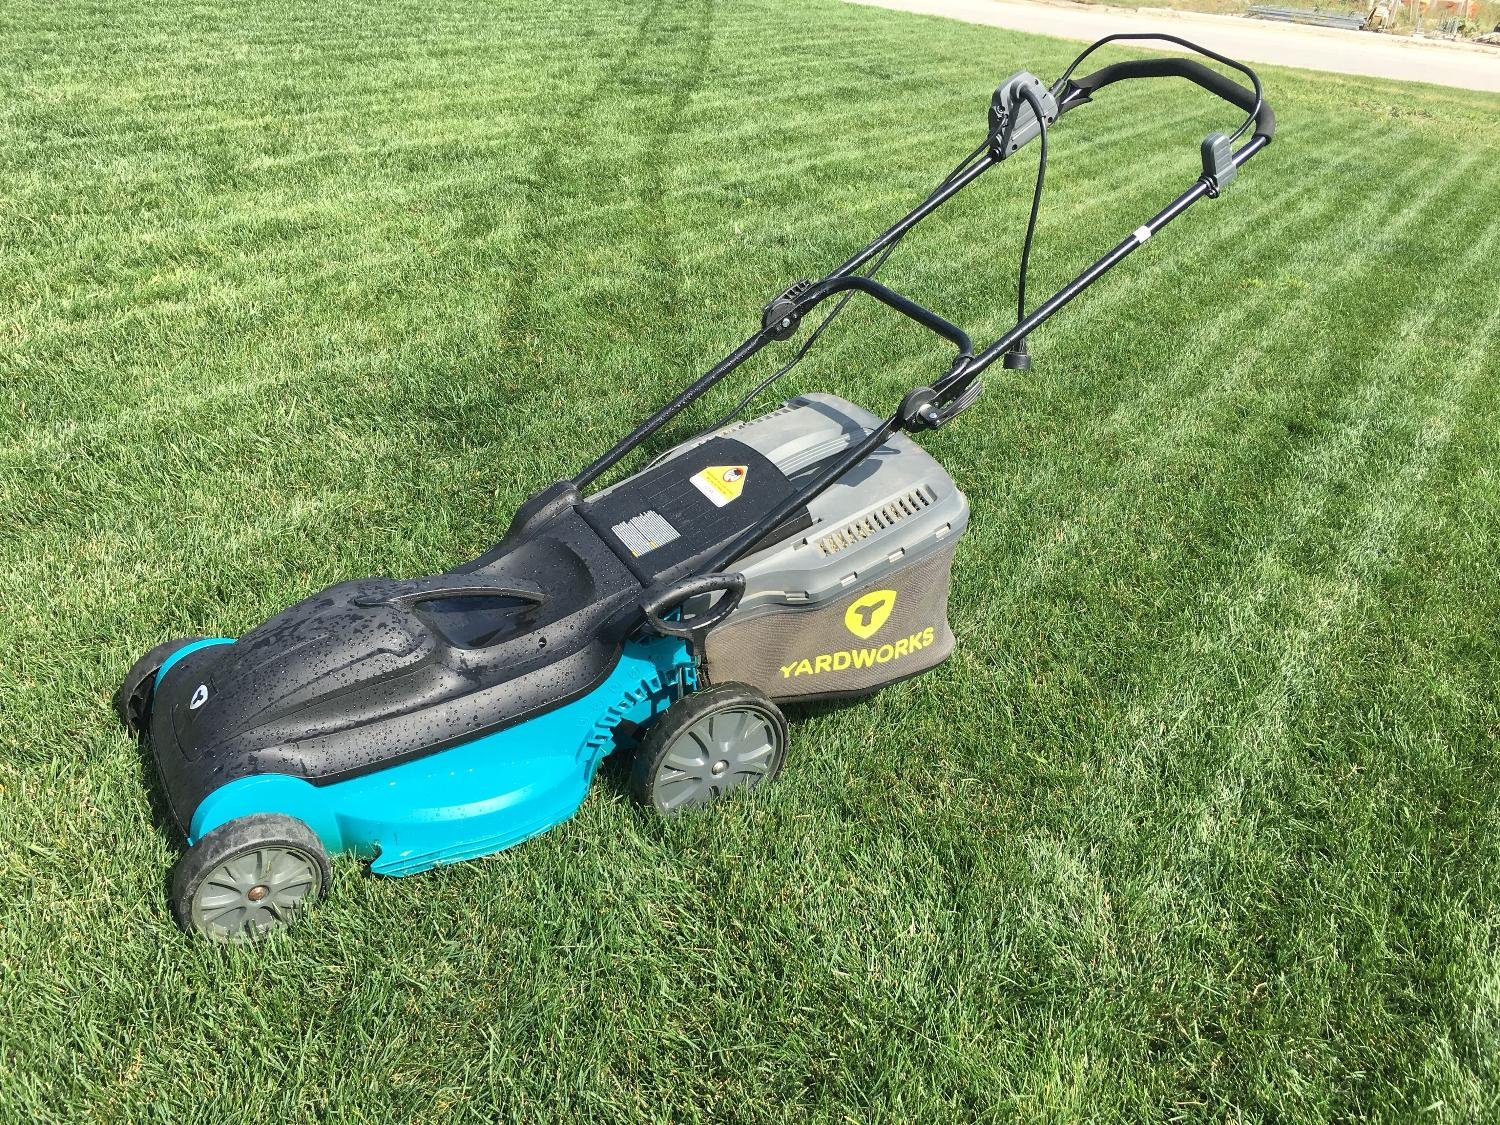 Find More Yardworks 12a Electric Lawn Mower For Sale At Up